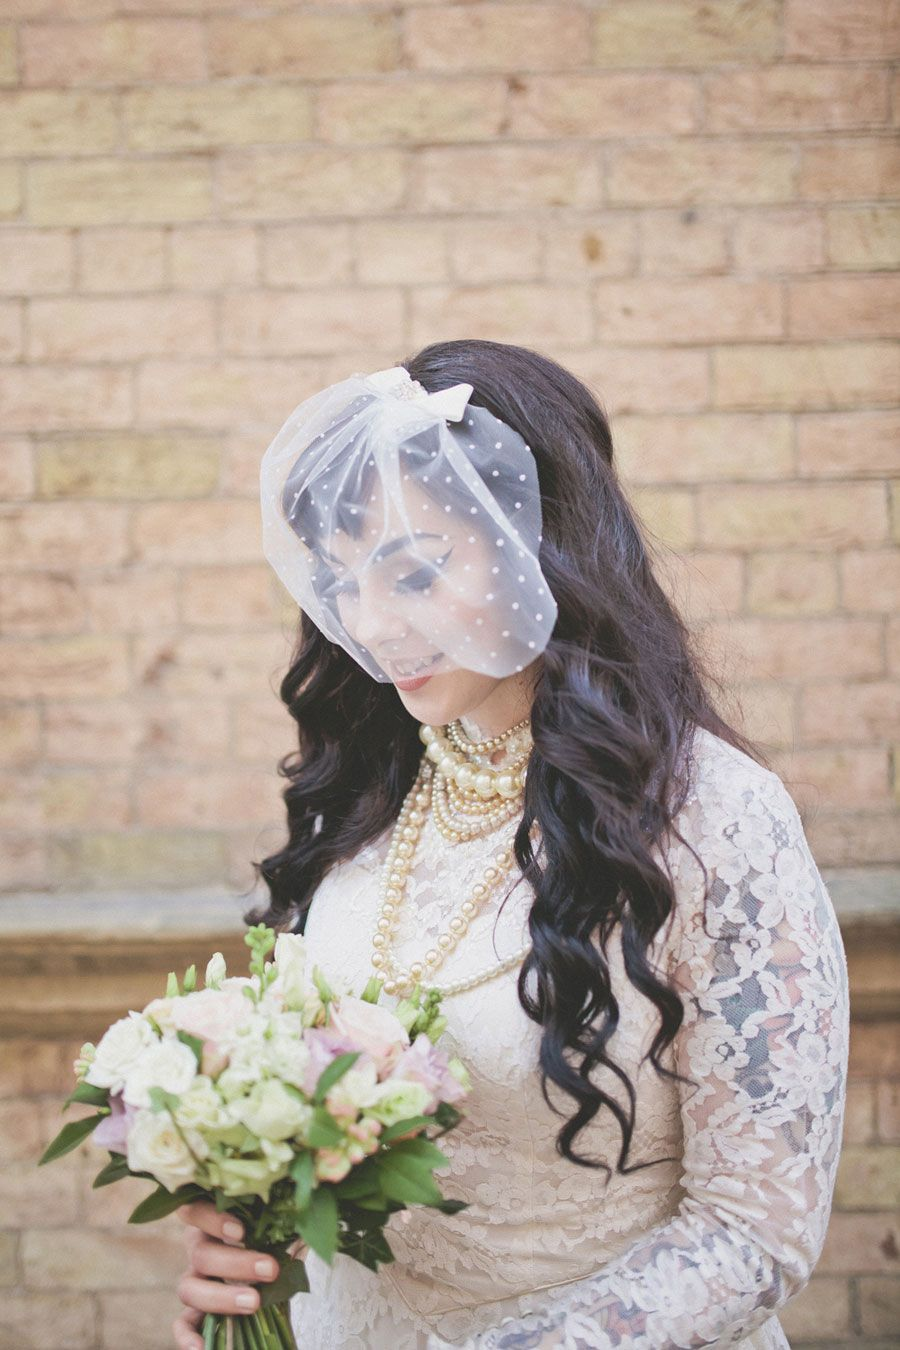 eclectic vintage wedding in york with 50s style bride: jemma